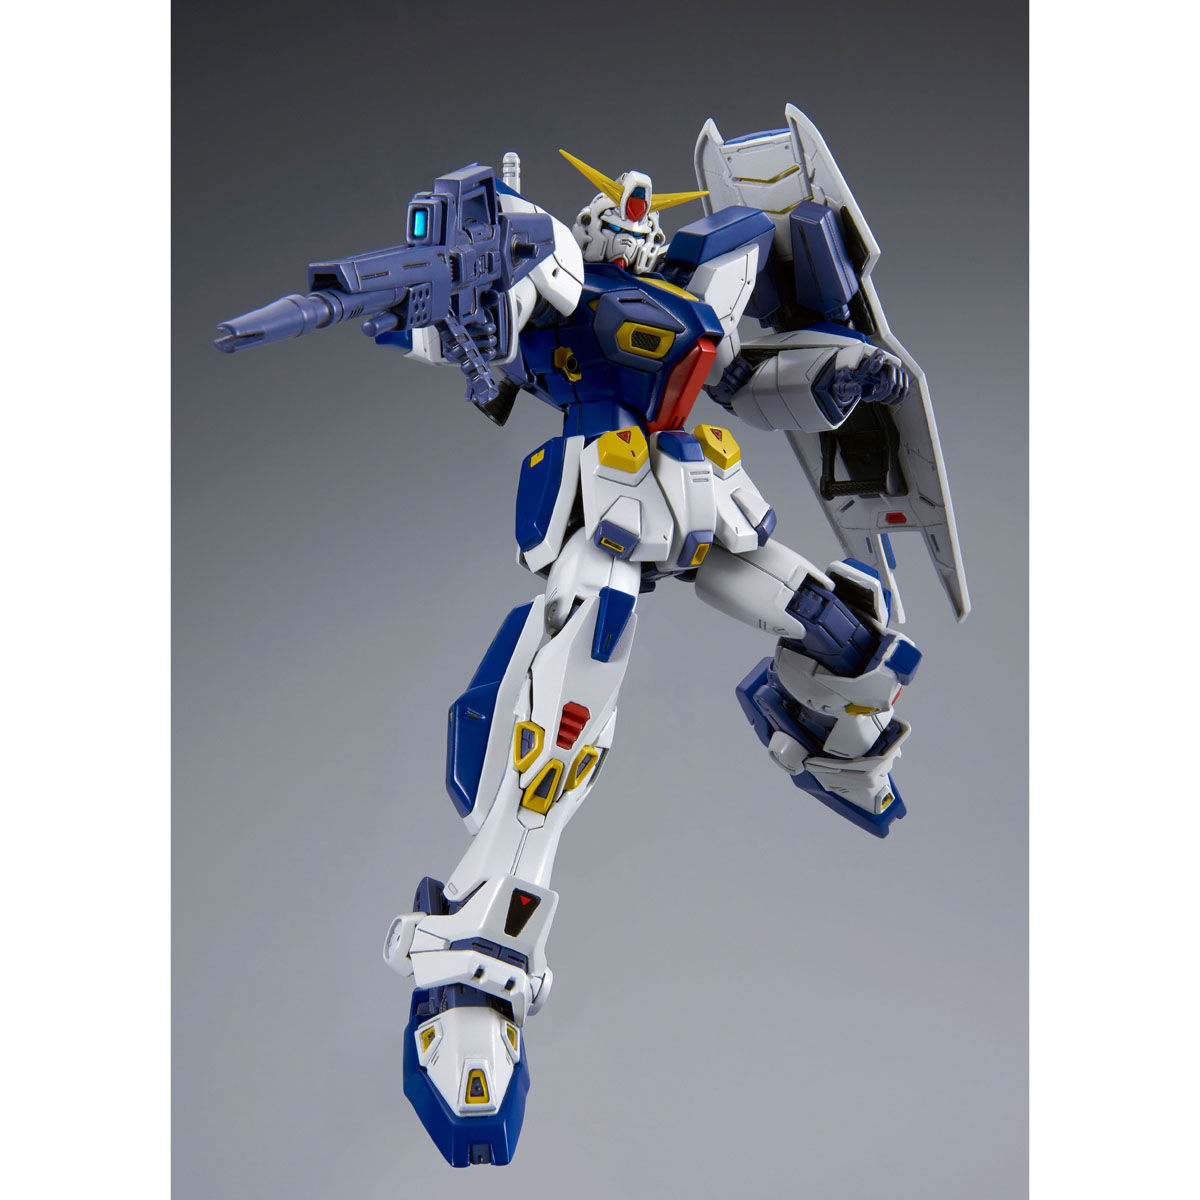 P-Bandai F90 A to Z Project: MG 1/00 GUNDAM F90 FULL promo ...